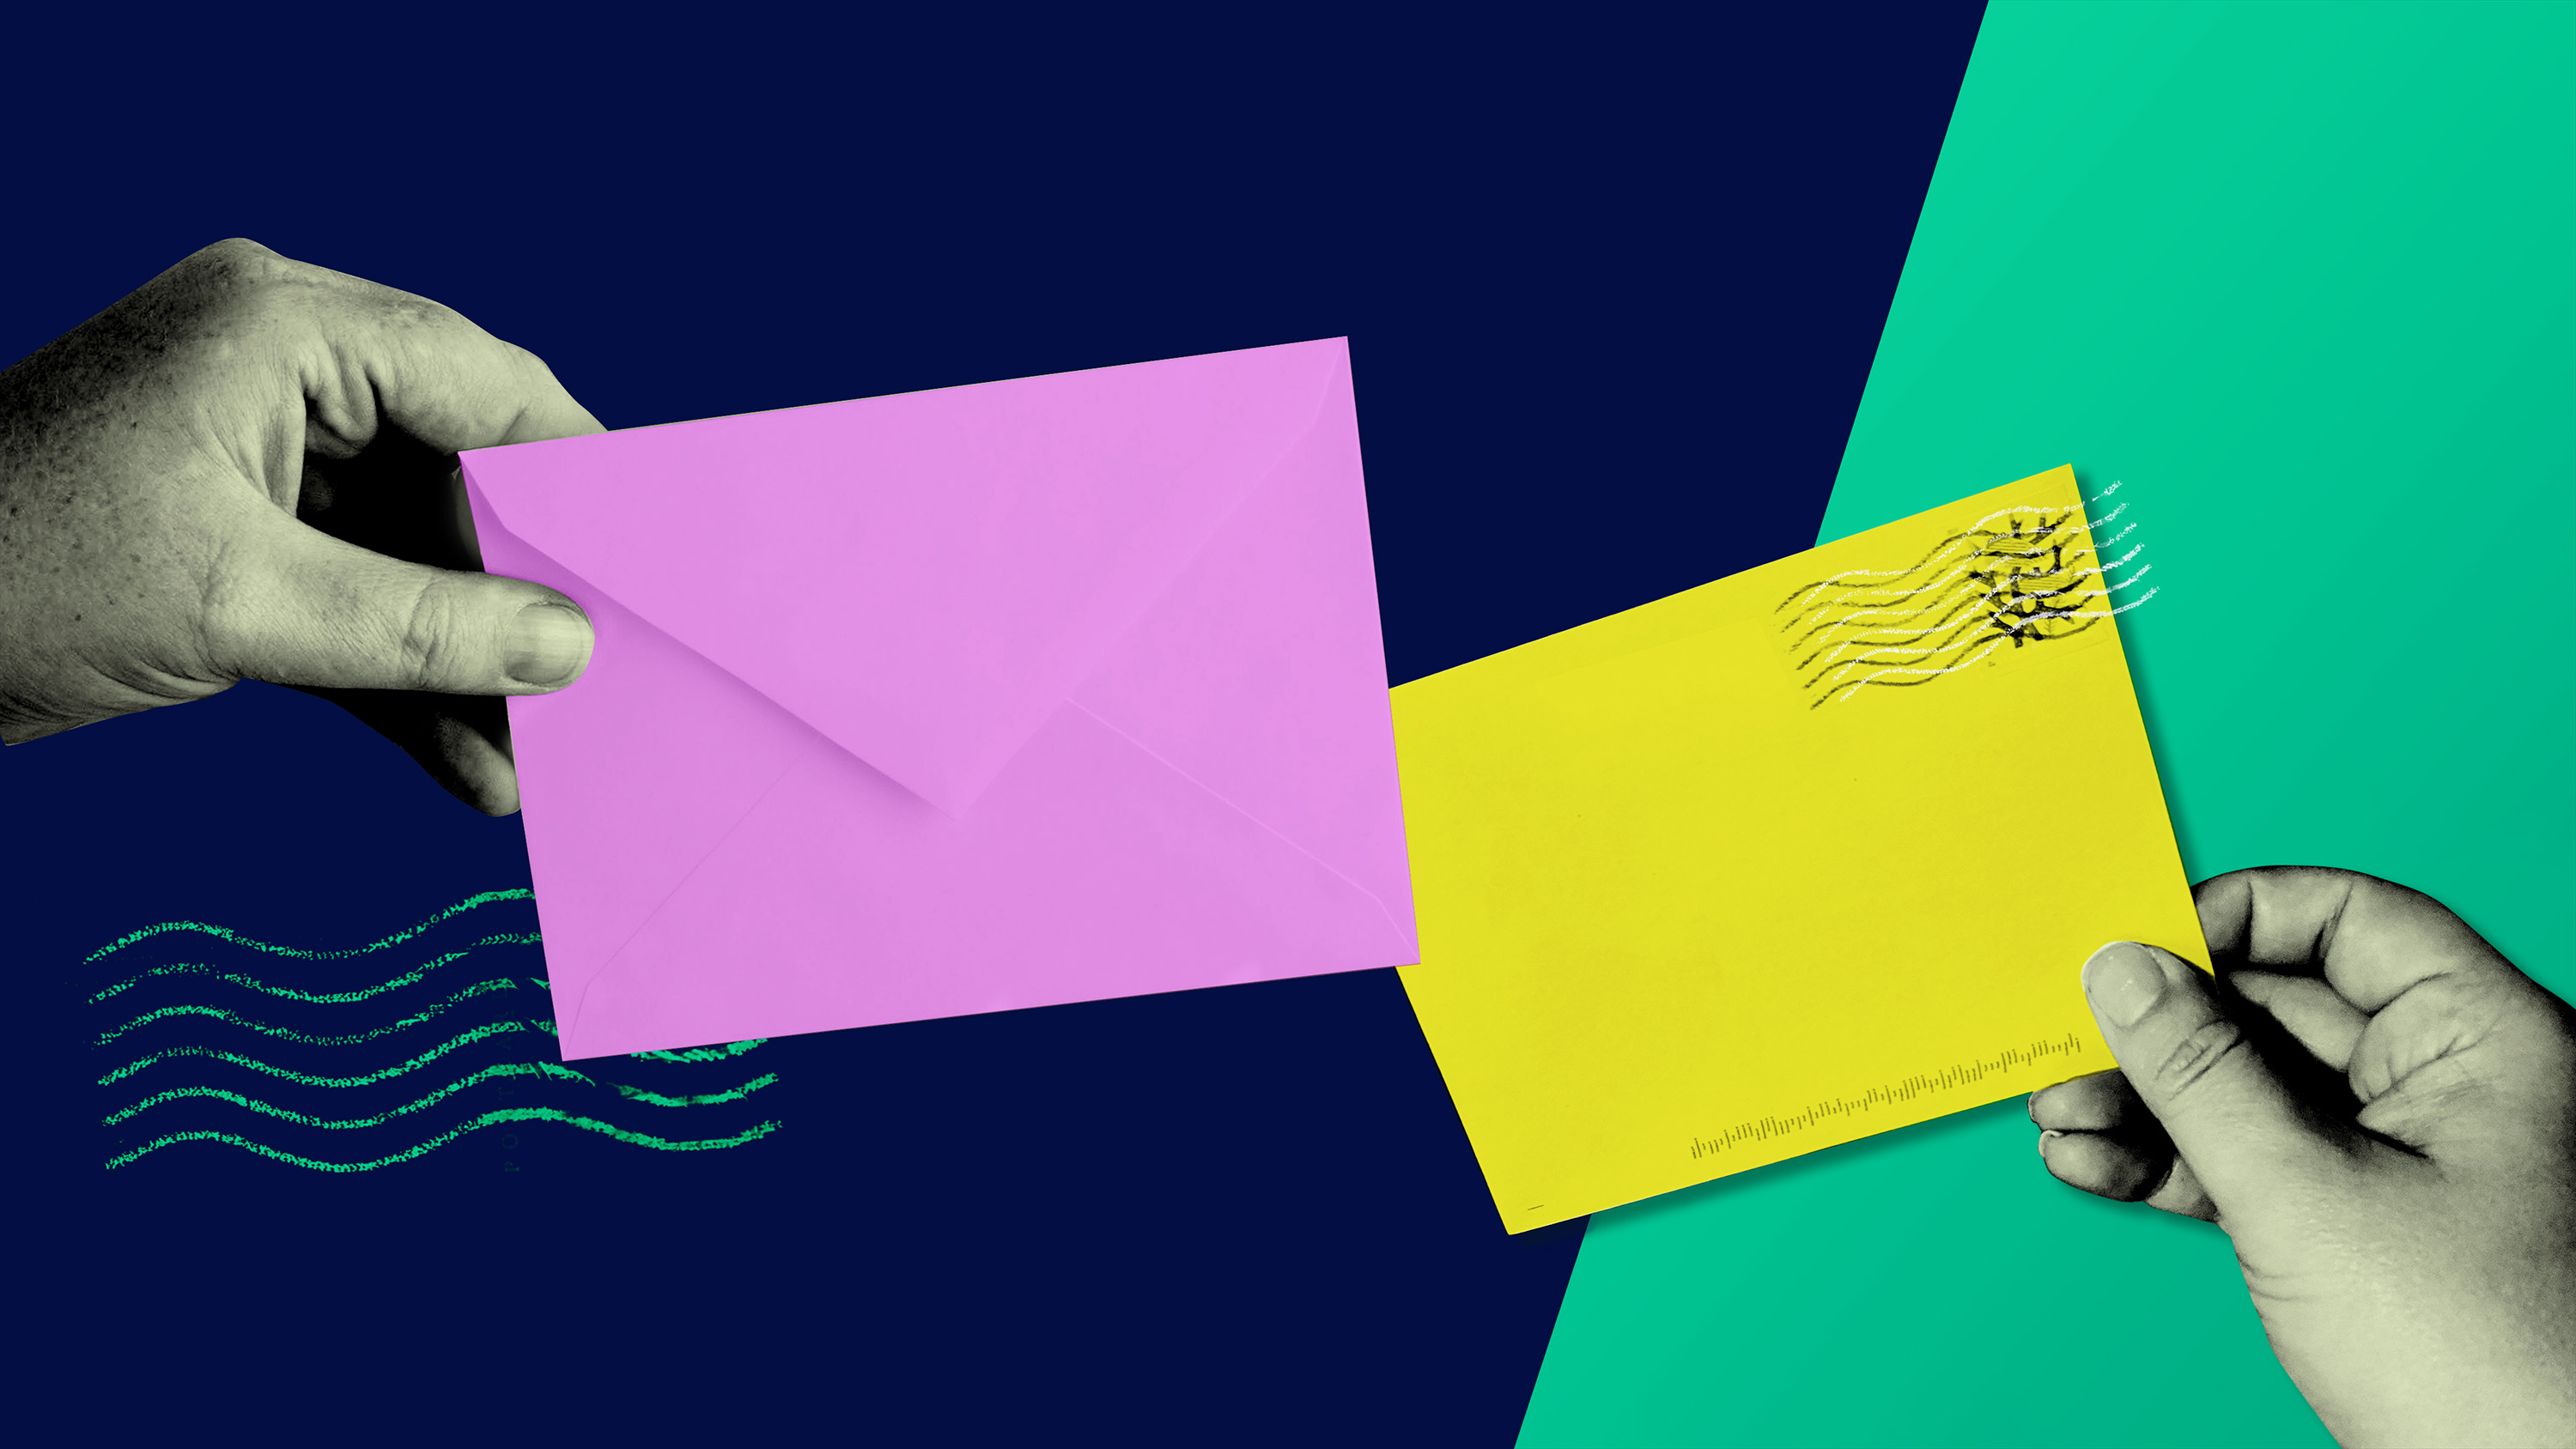 two hands holding envelopes left is pink right is yellow background is indigo on left and green on right